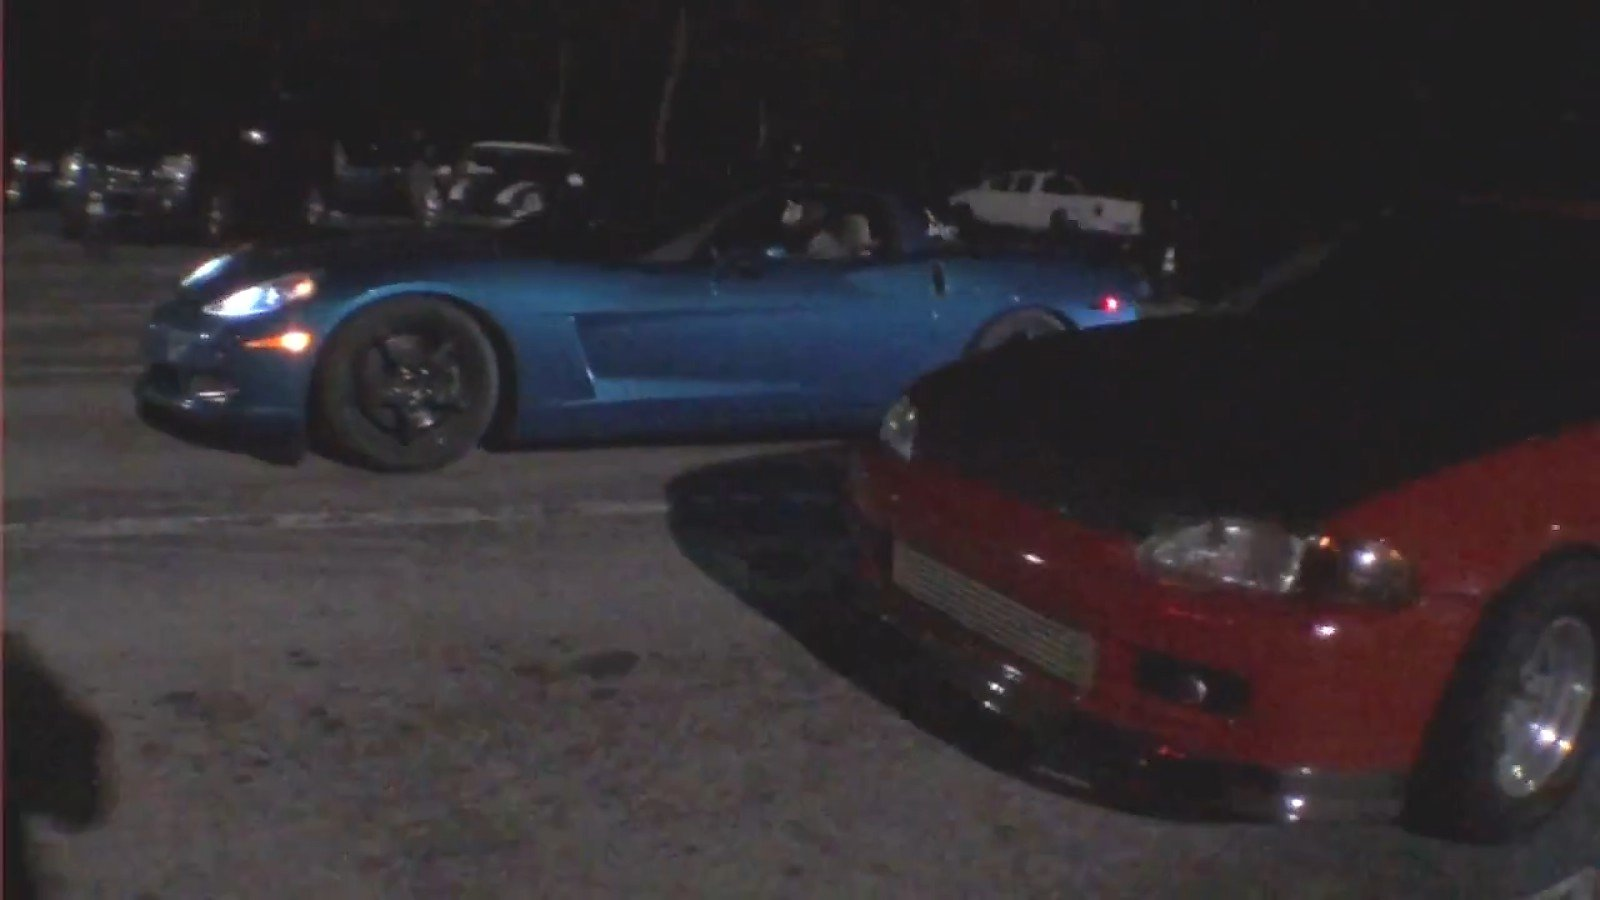 Video: Bolt-On C6 Corvette Duels Nasty Turbo Civic at the Strip